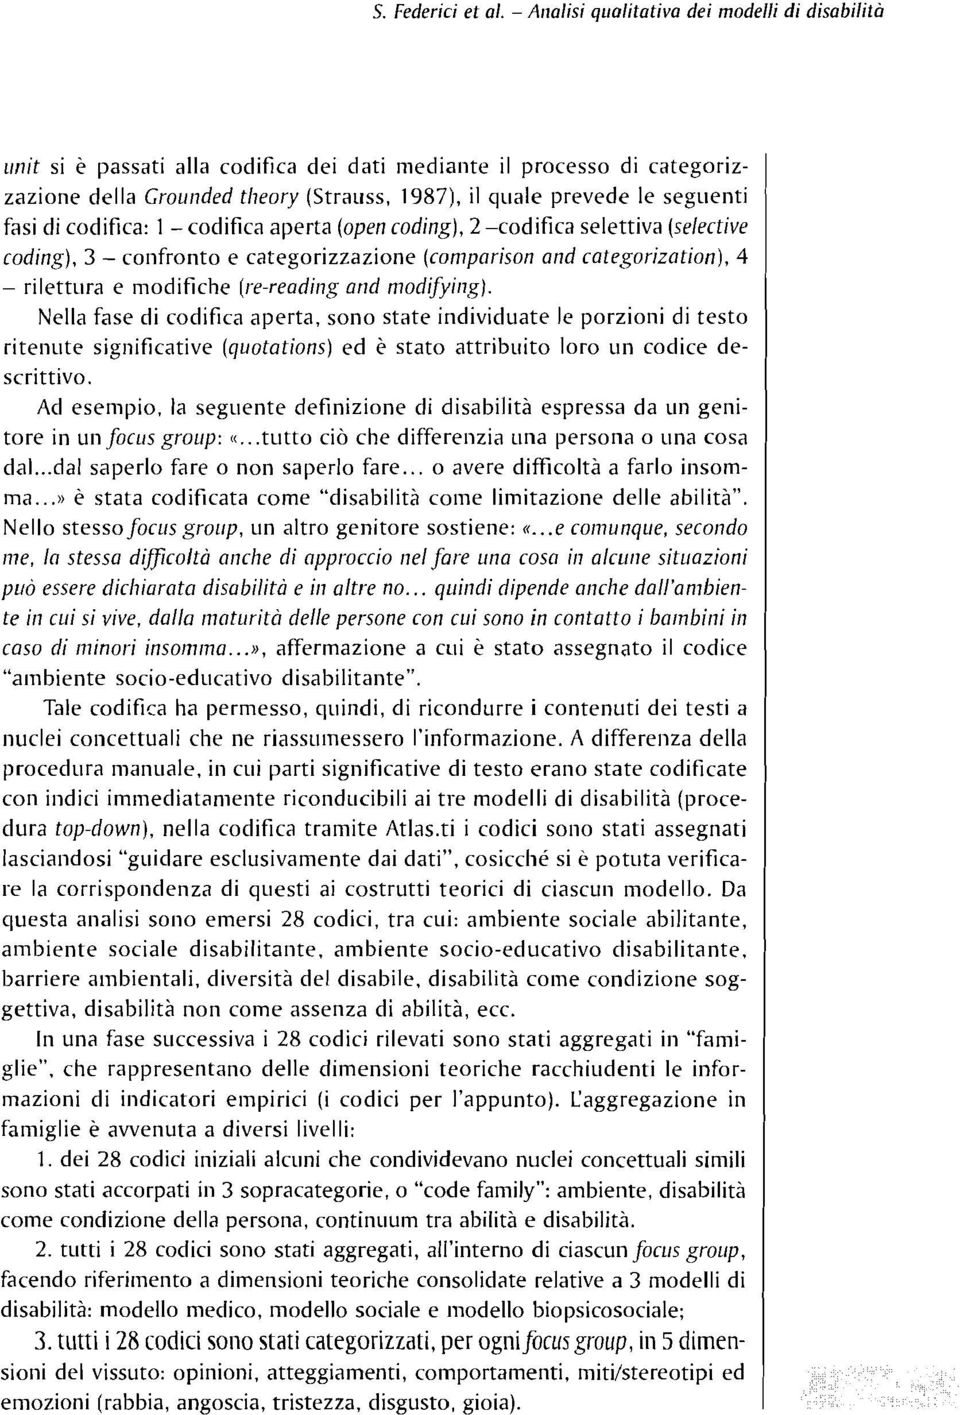 fasi di codifica: l - codifica aperta (open coding), 2 -codifica selettiva (selective coding), 3 - confronto e categorizzazione (comparison and categorization), 4 - rilettura e modifiche (re-reading